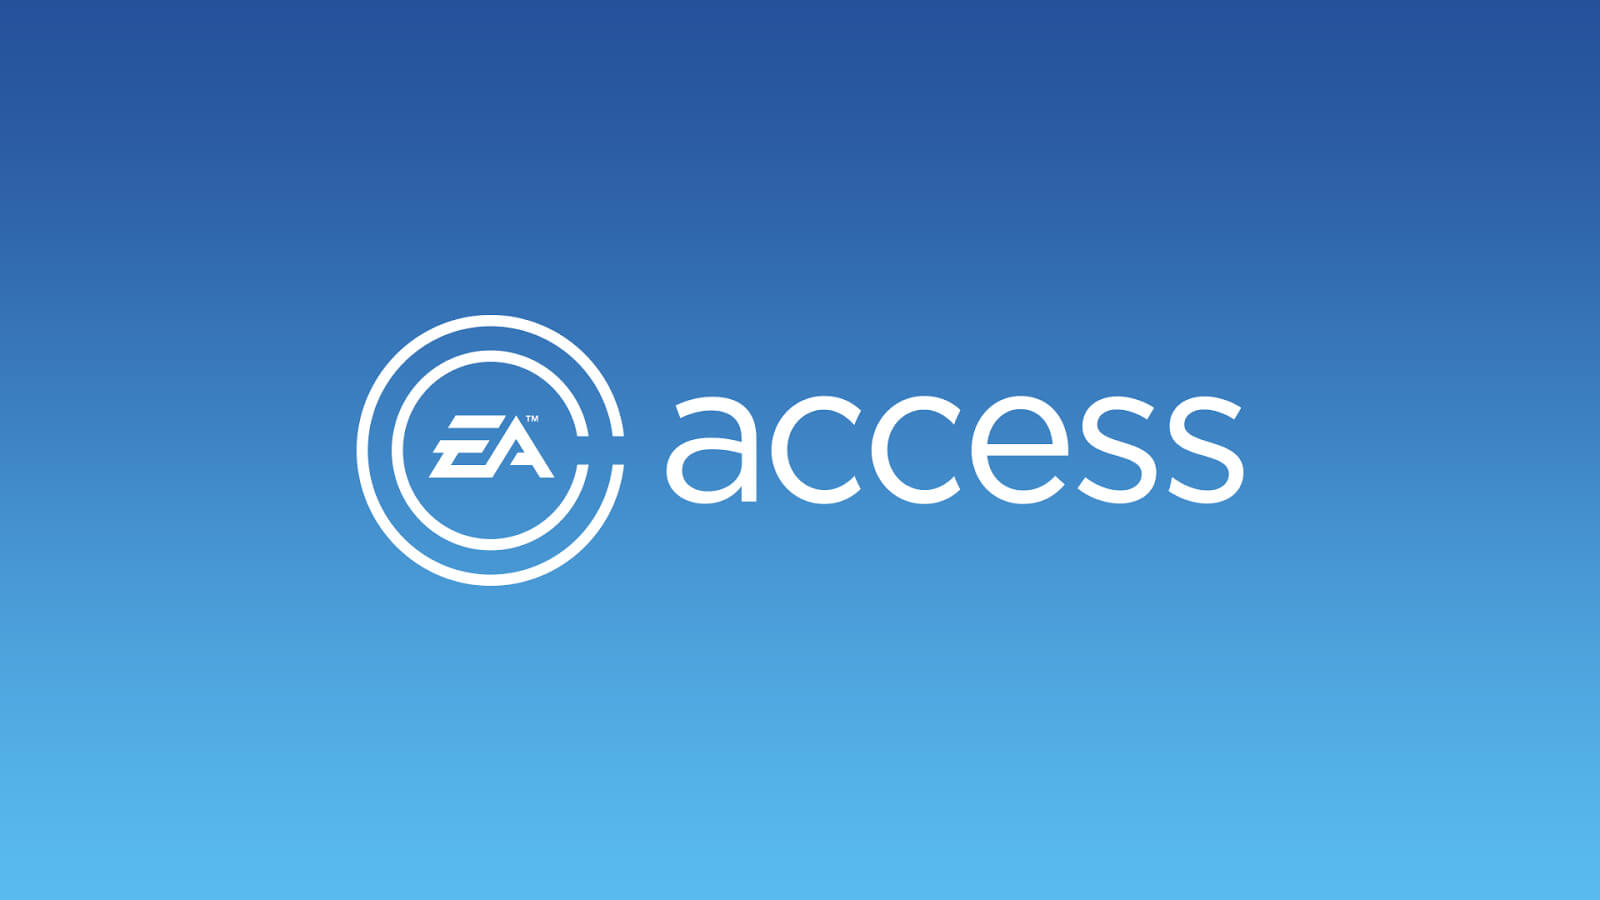 🎮XBOX GAME PASS ULTIMATE+EA ACCESS 12-36 mon/АККАУНТ🎮